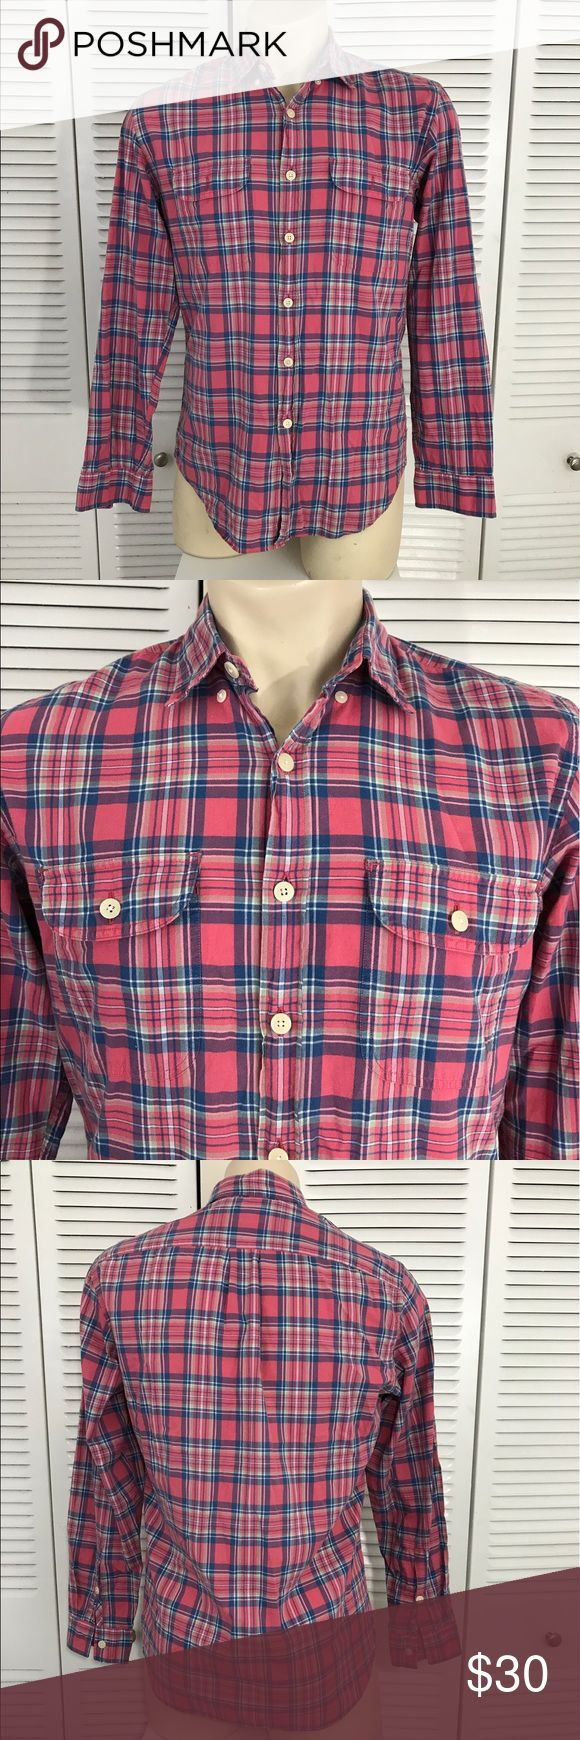 Madras shirt tailored by J. crew shirt size medium Men's tailored madras shirt by J. Crew long sleeve plaid shirt size medium. 100% cotton J. Crew Shirts Casual Button Down Shirts